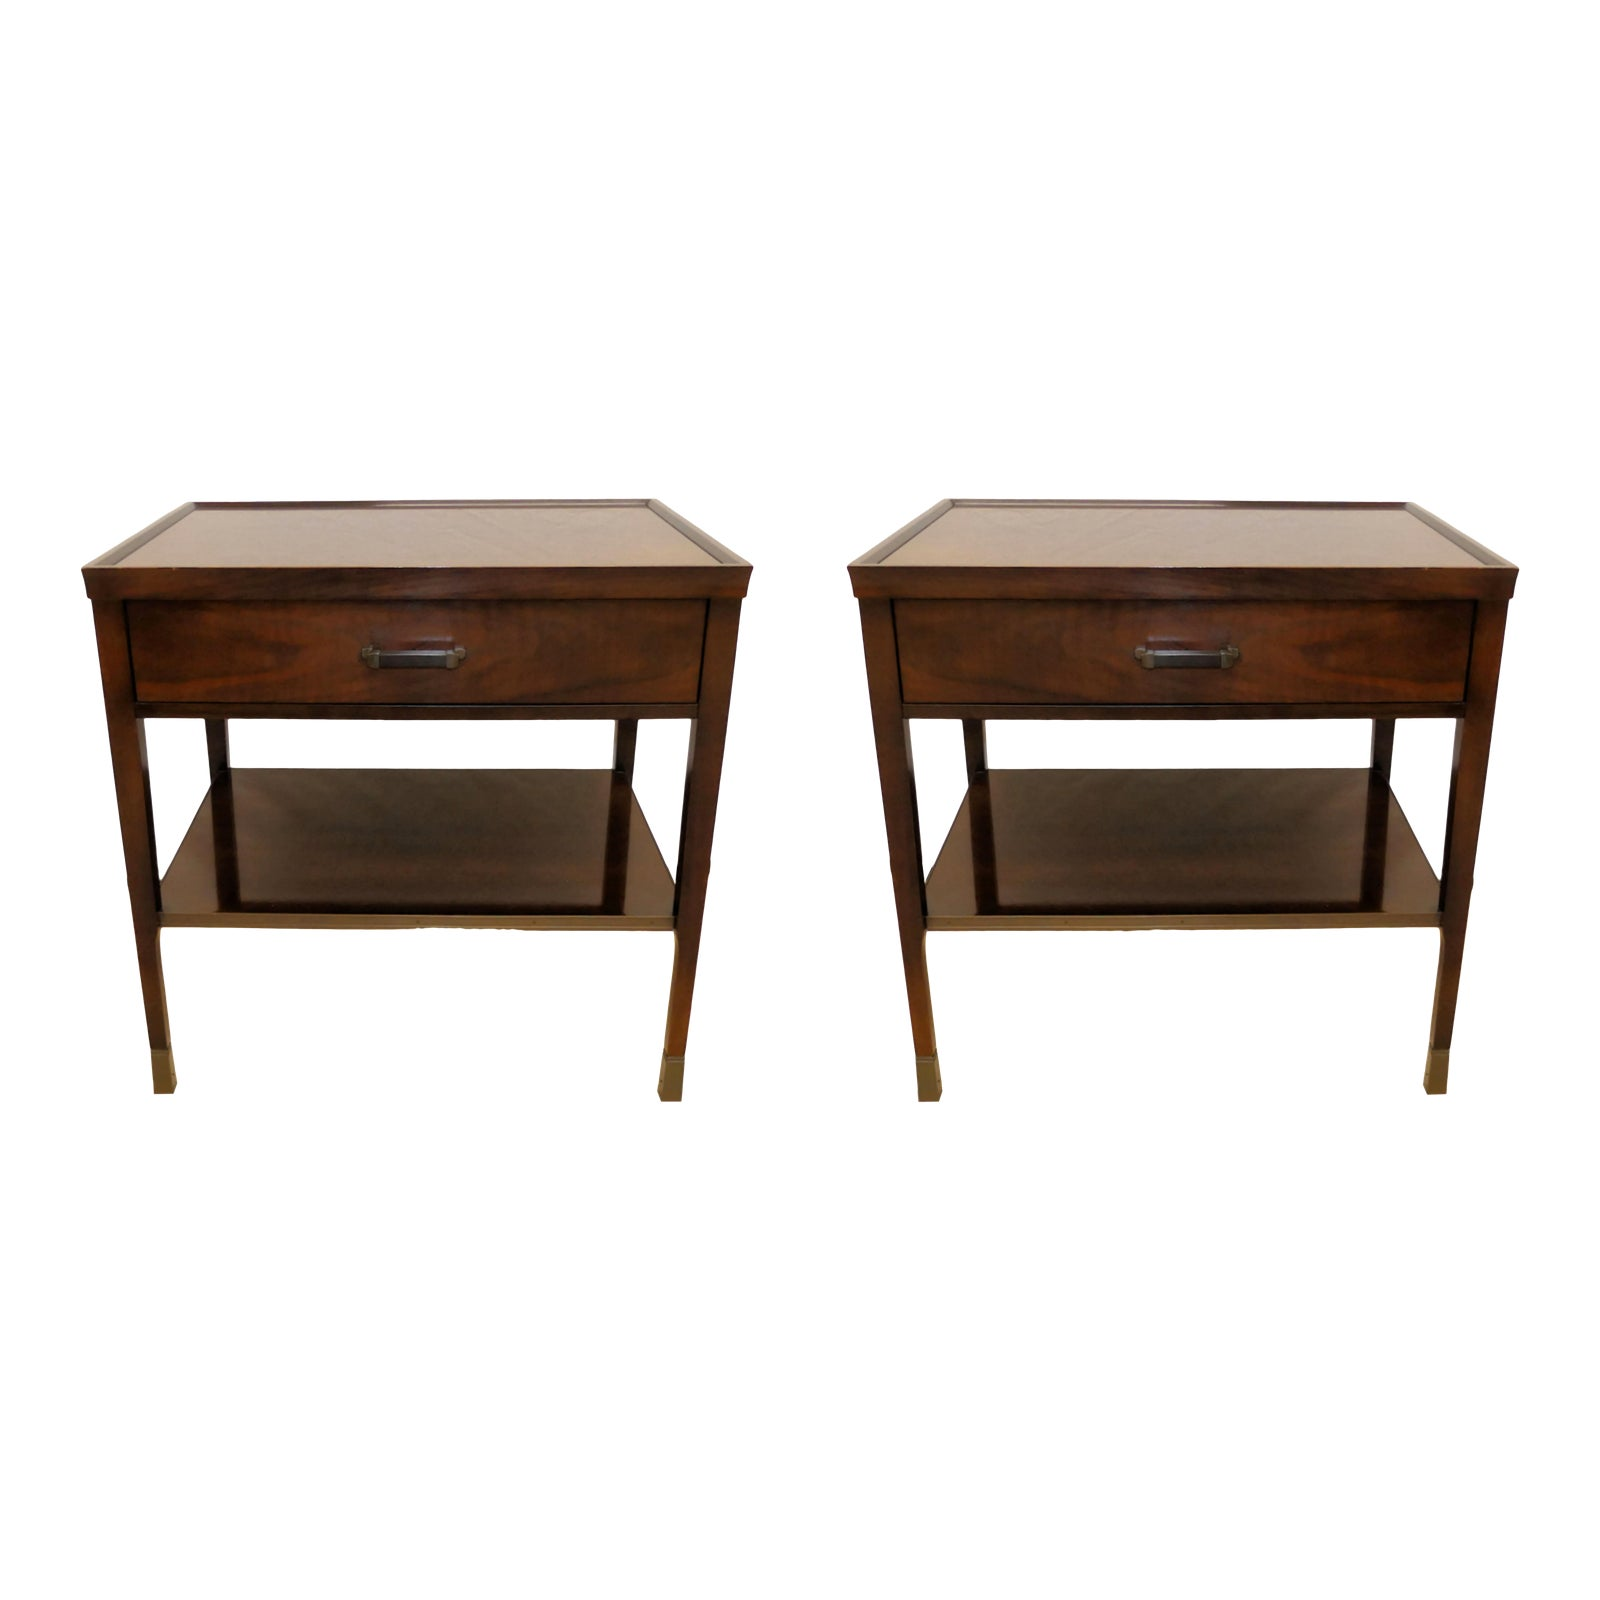 SOLD Baker Bill Sofield Nightstands